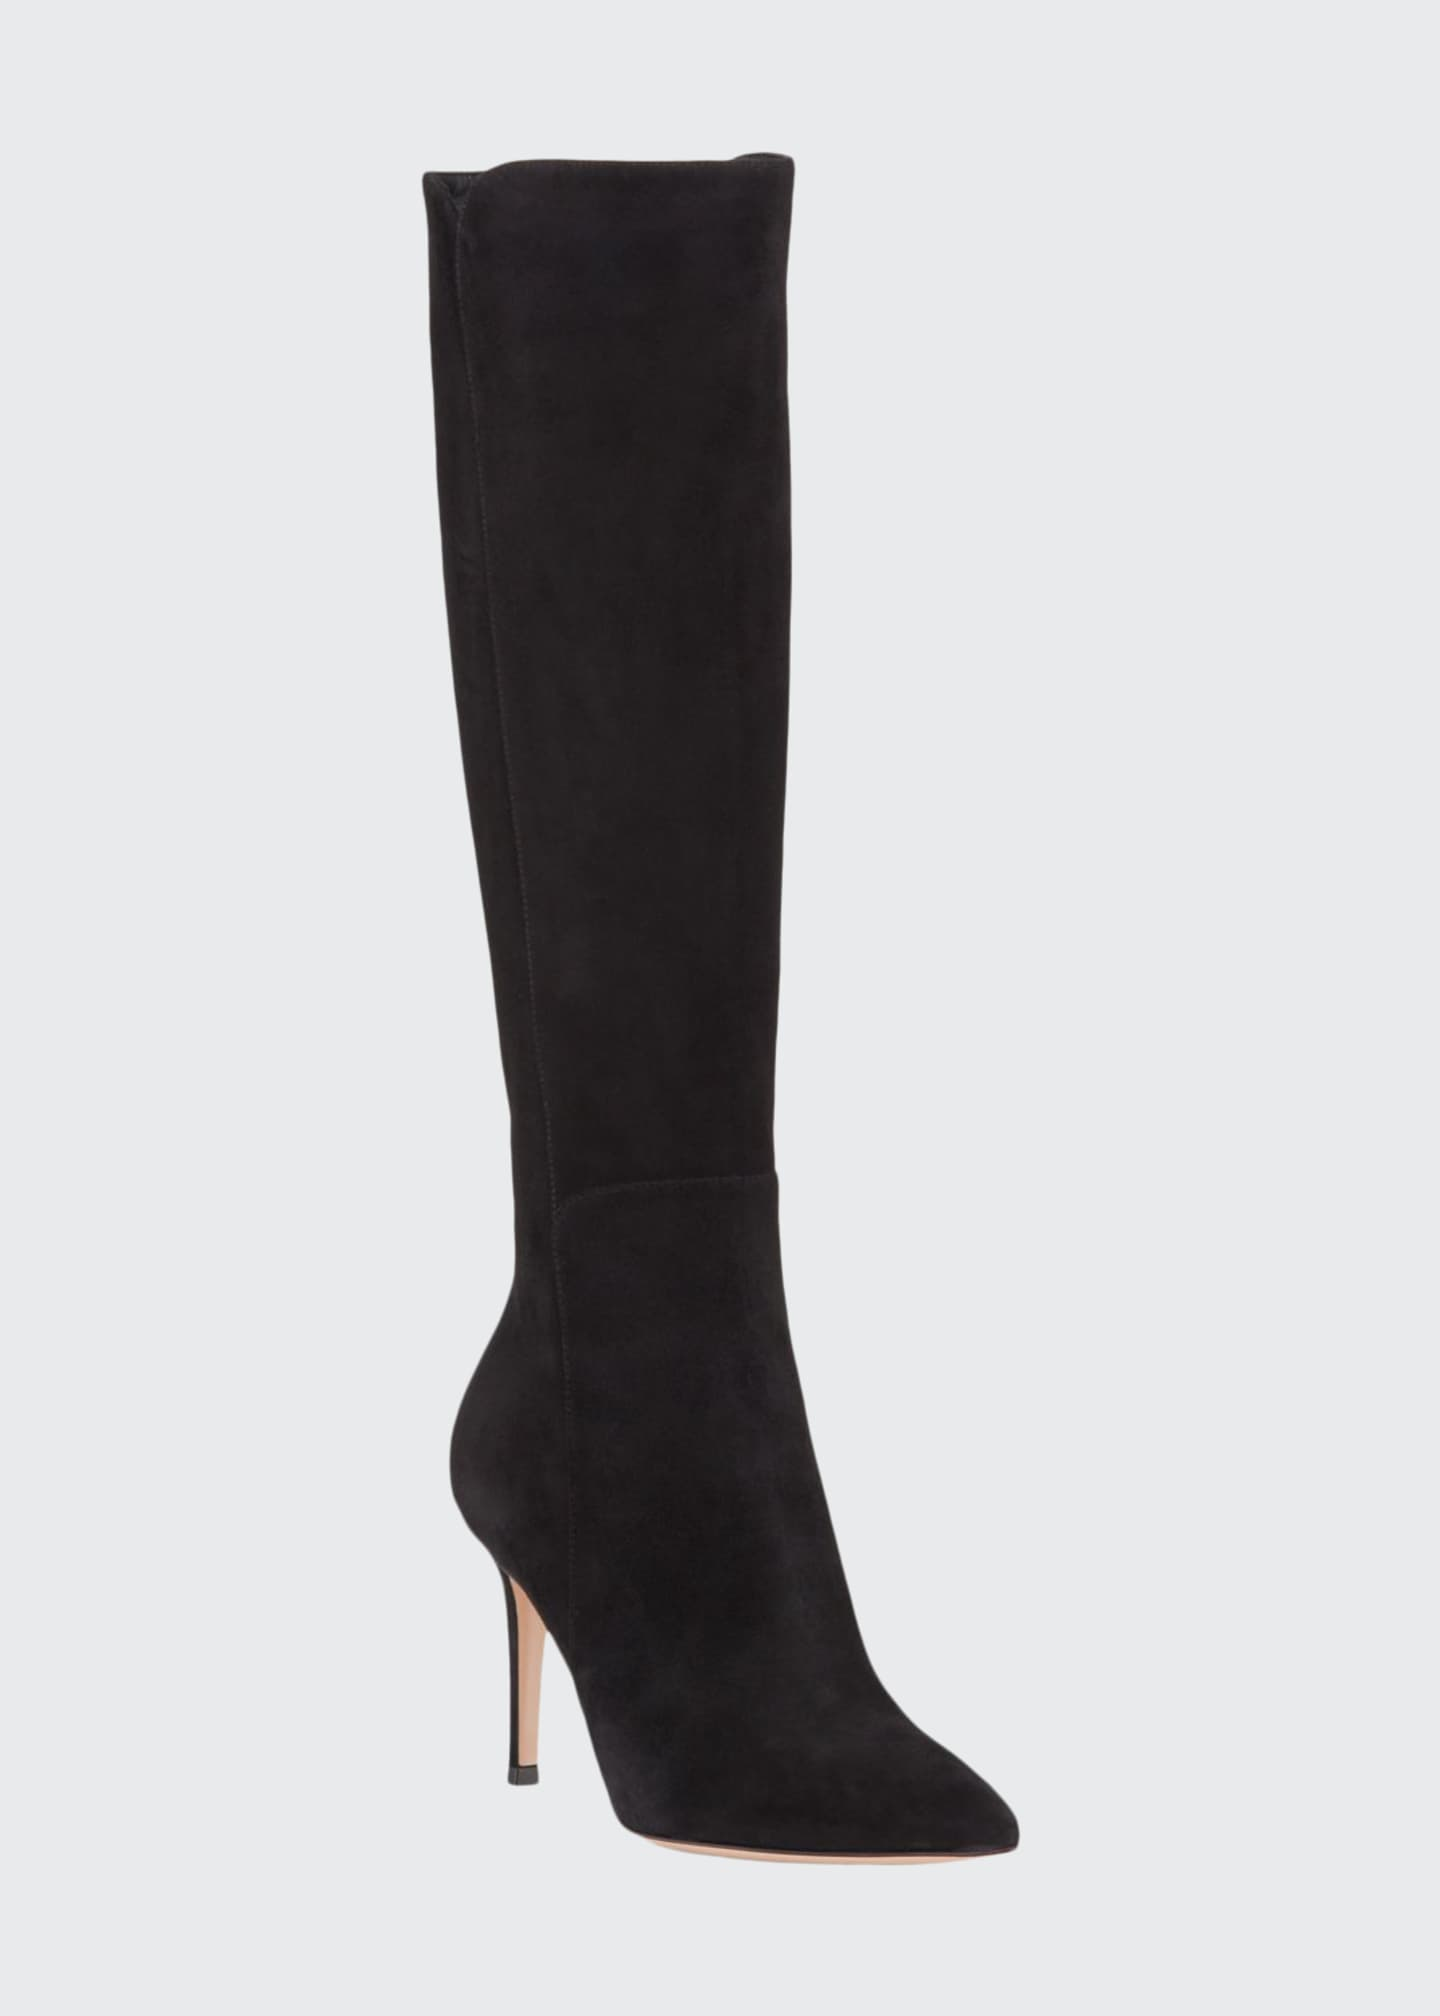 Gianvito Rossi Suede Pointed-Toe Tall Boots